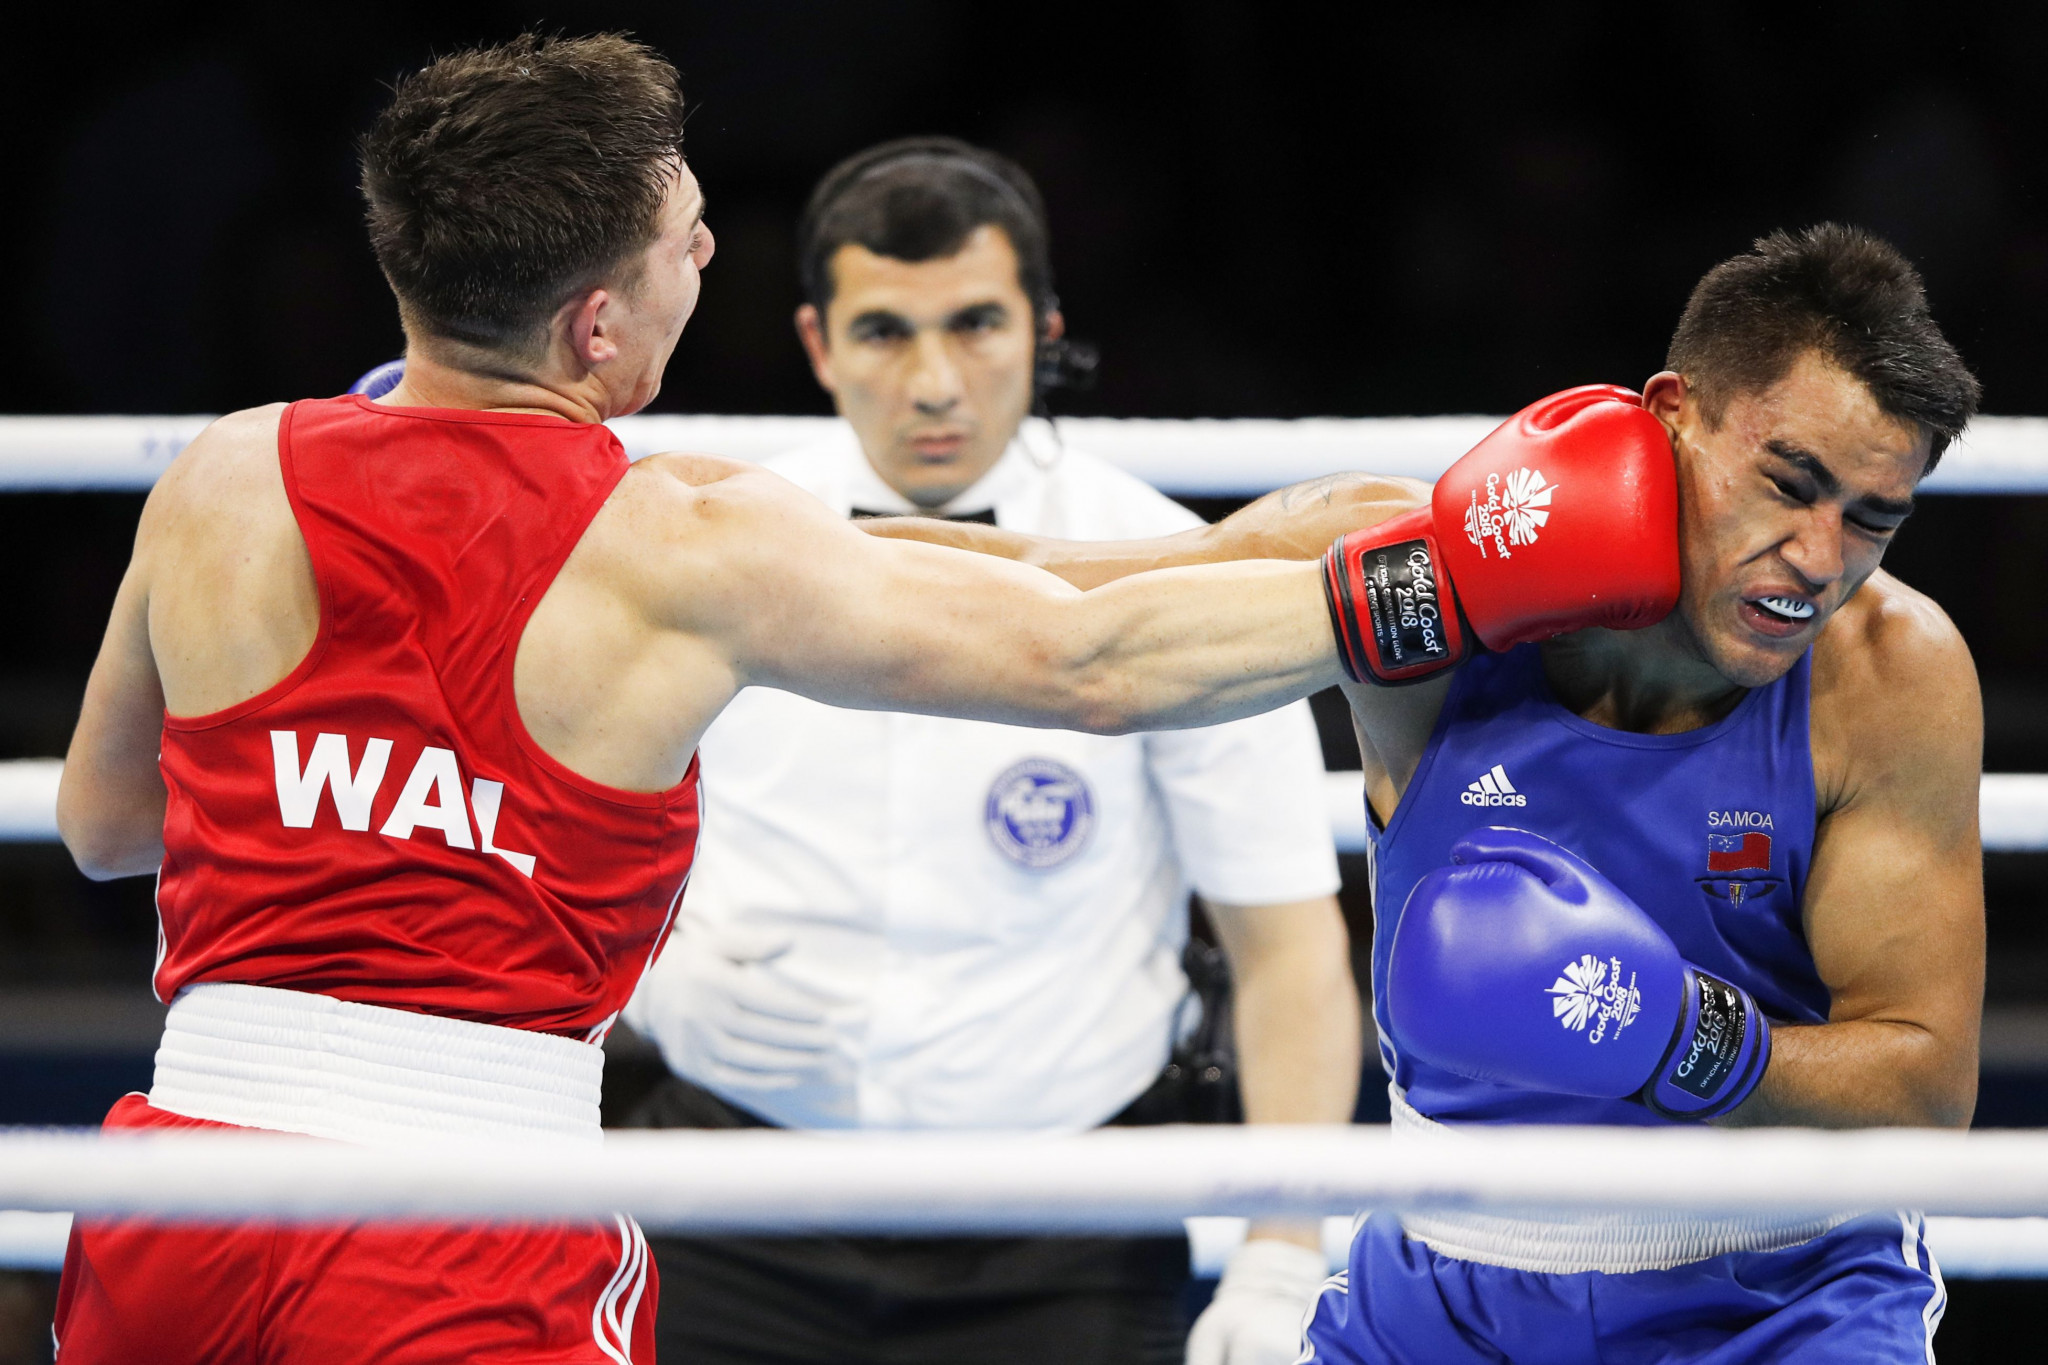 Special CGF taskforce set to organise Birmingham 2022 boxing tournament